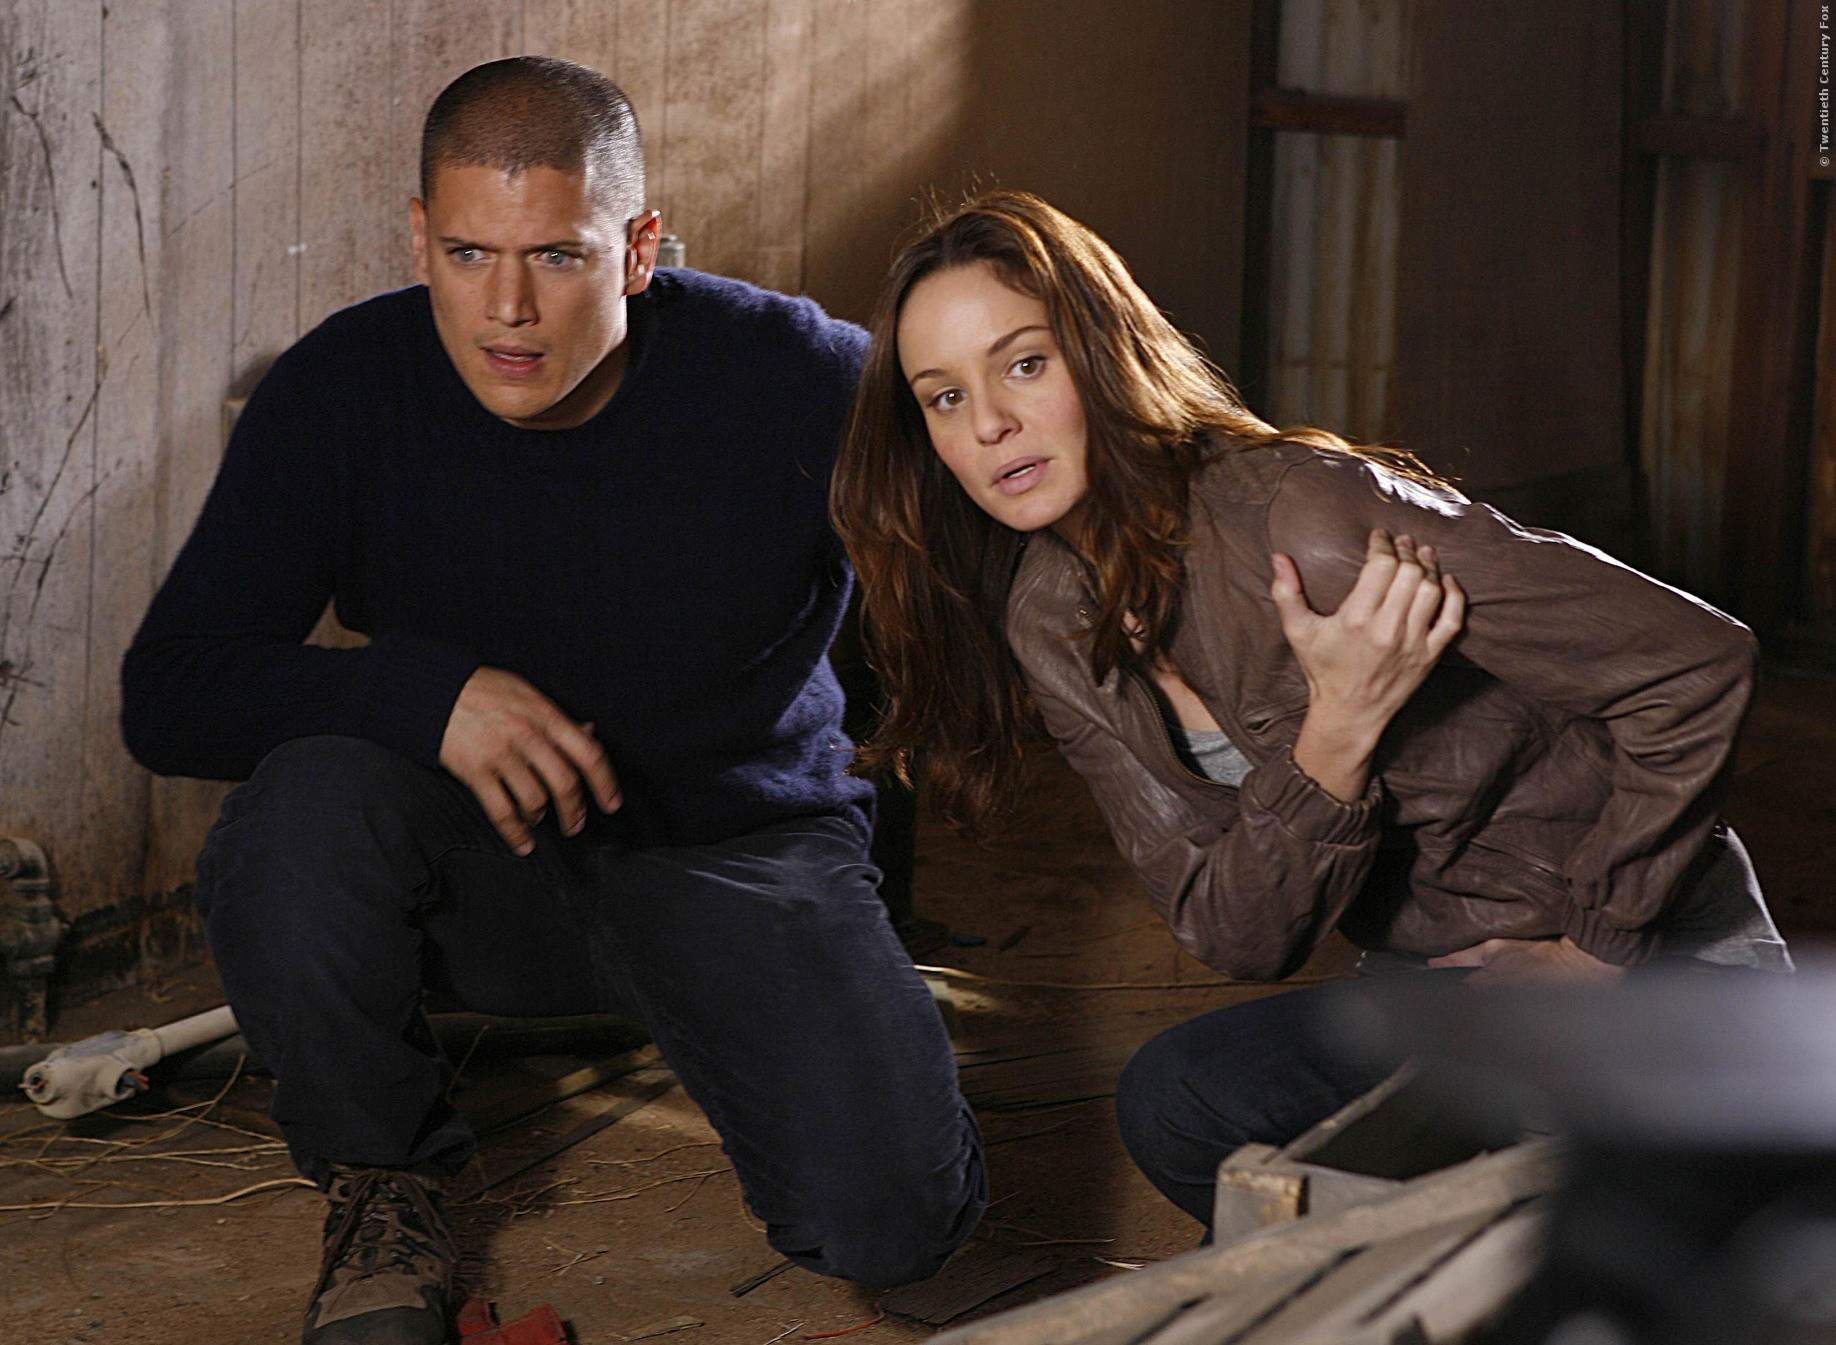 Sara Tancredi und Michael Scofield waren das Dreamteam in der Serie PRISON BREAK.